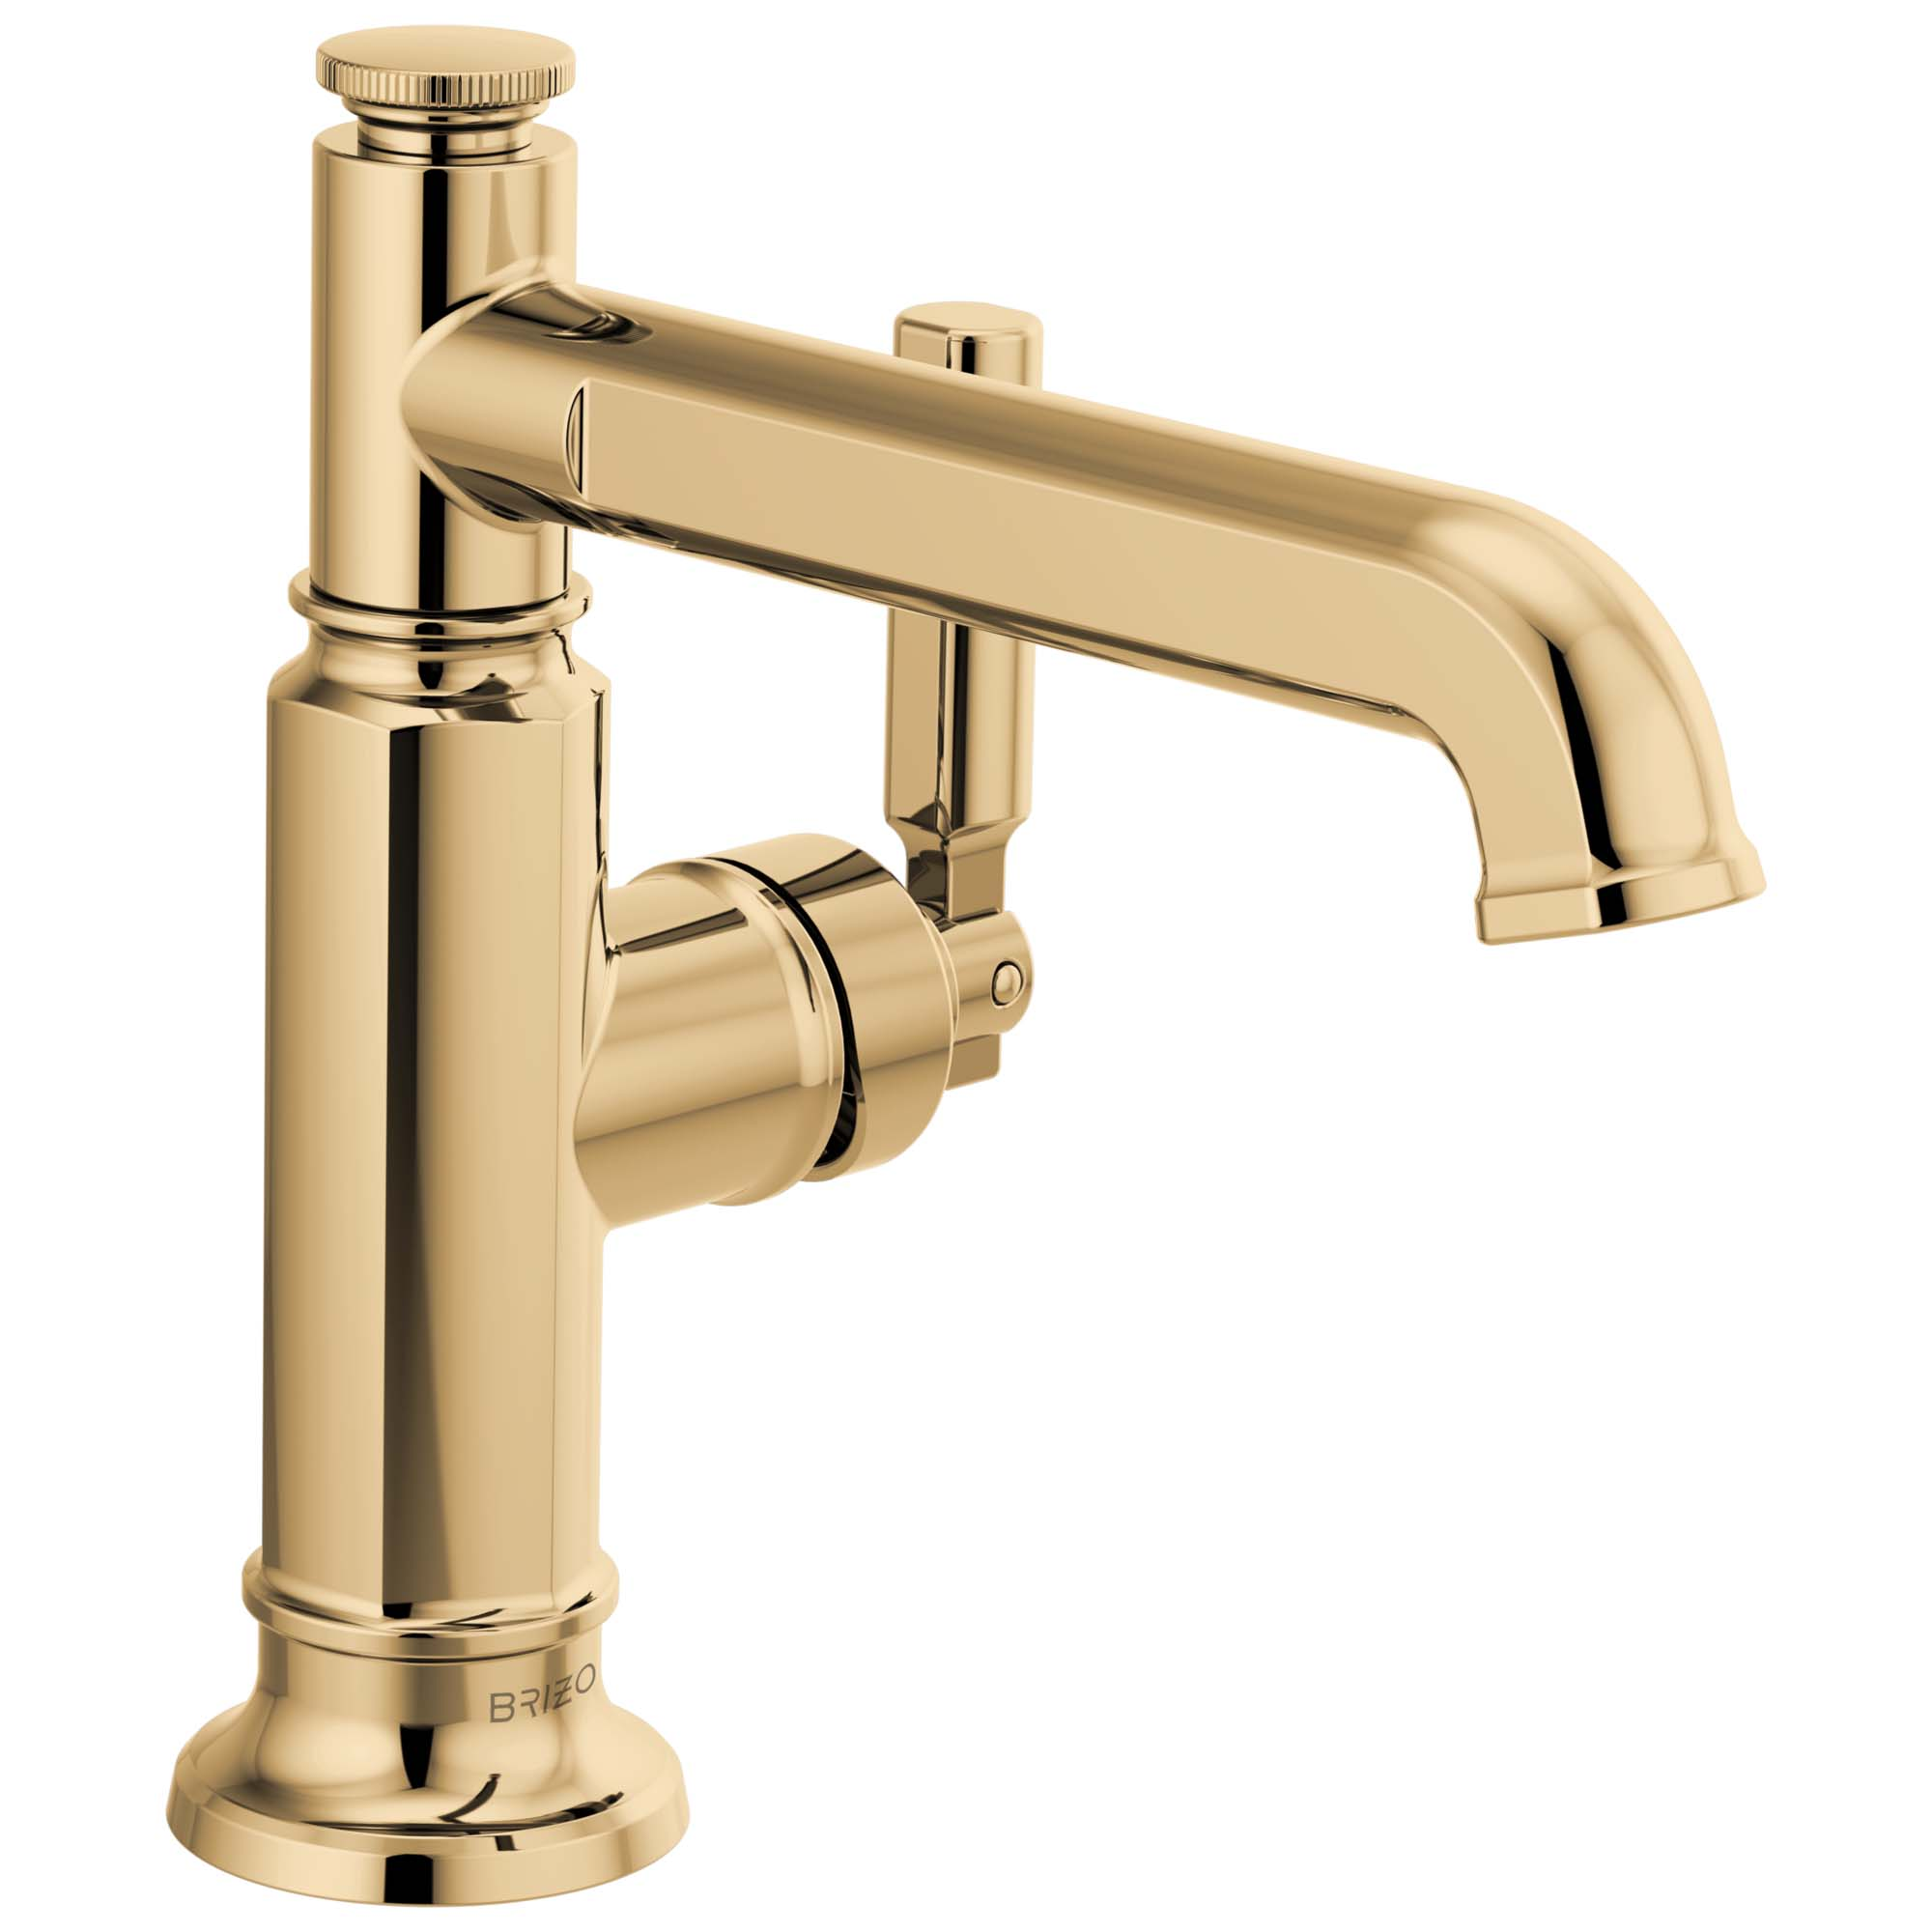 Brizo 65076LF-PG Brizo Invari: Single-Handle Lavatory Faucet - Polished Gold